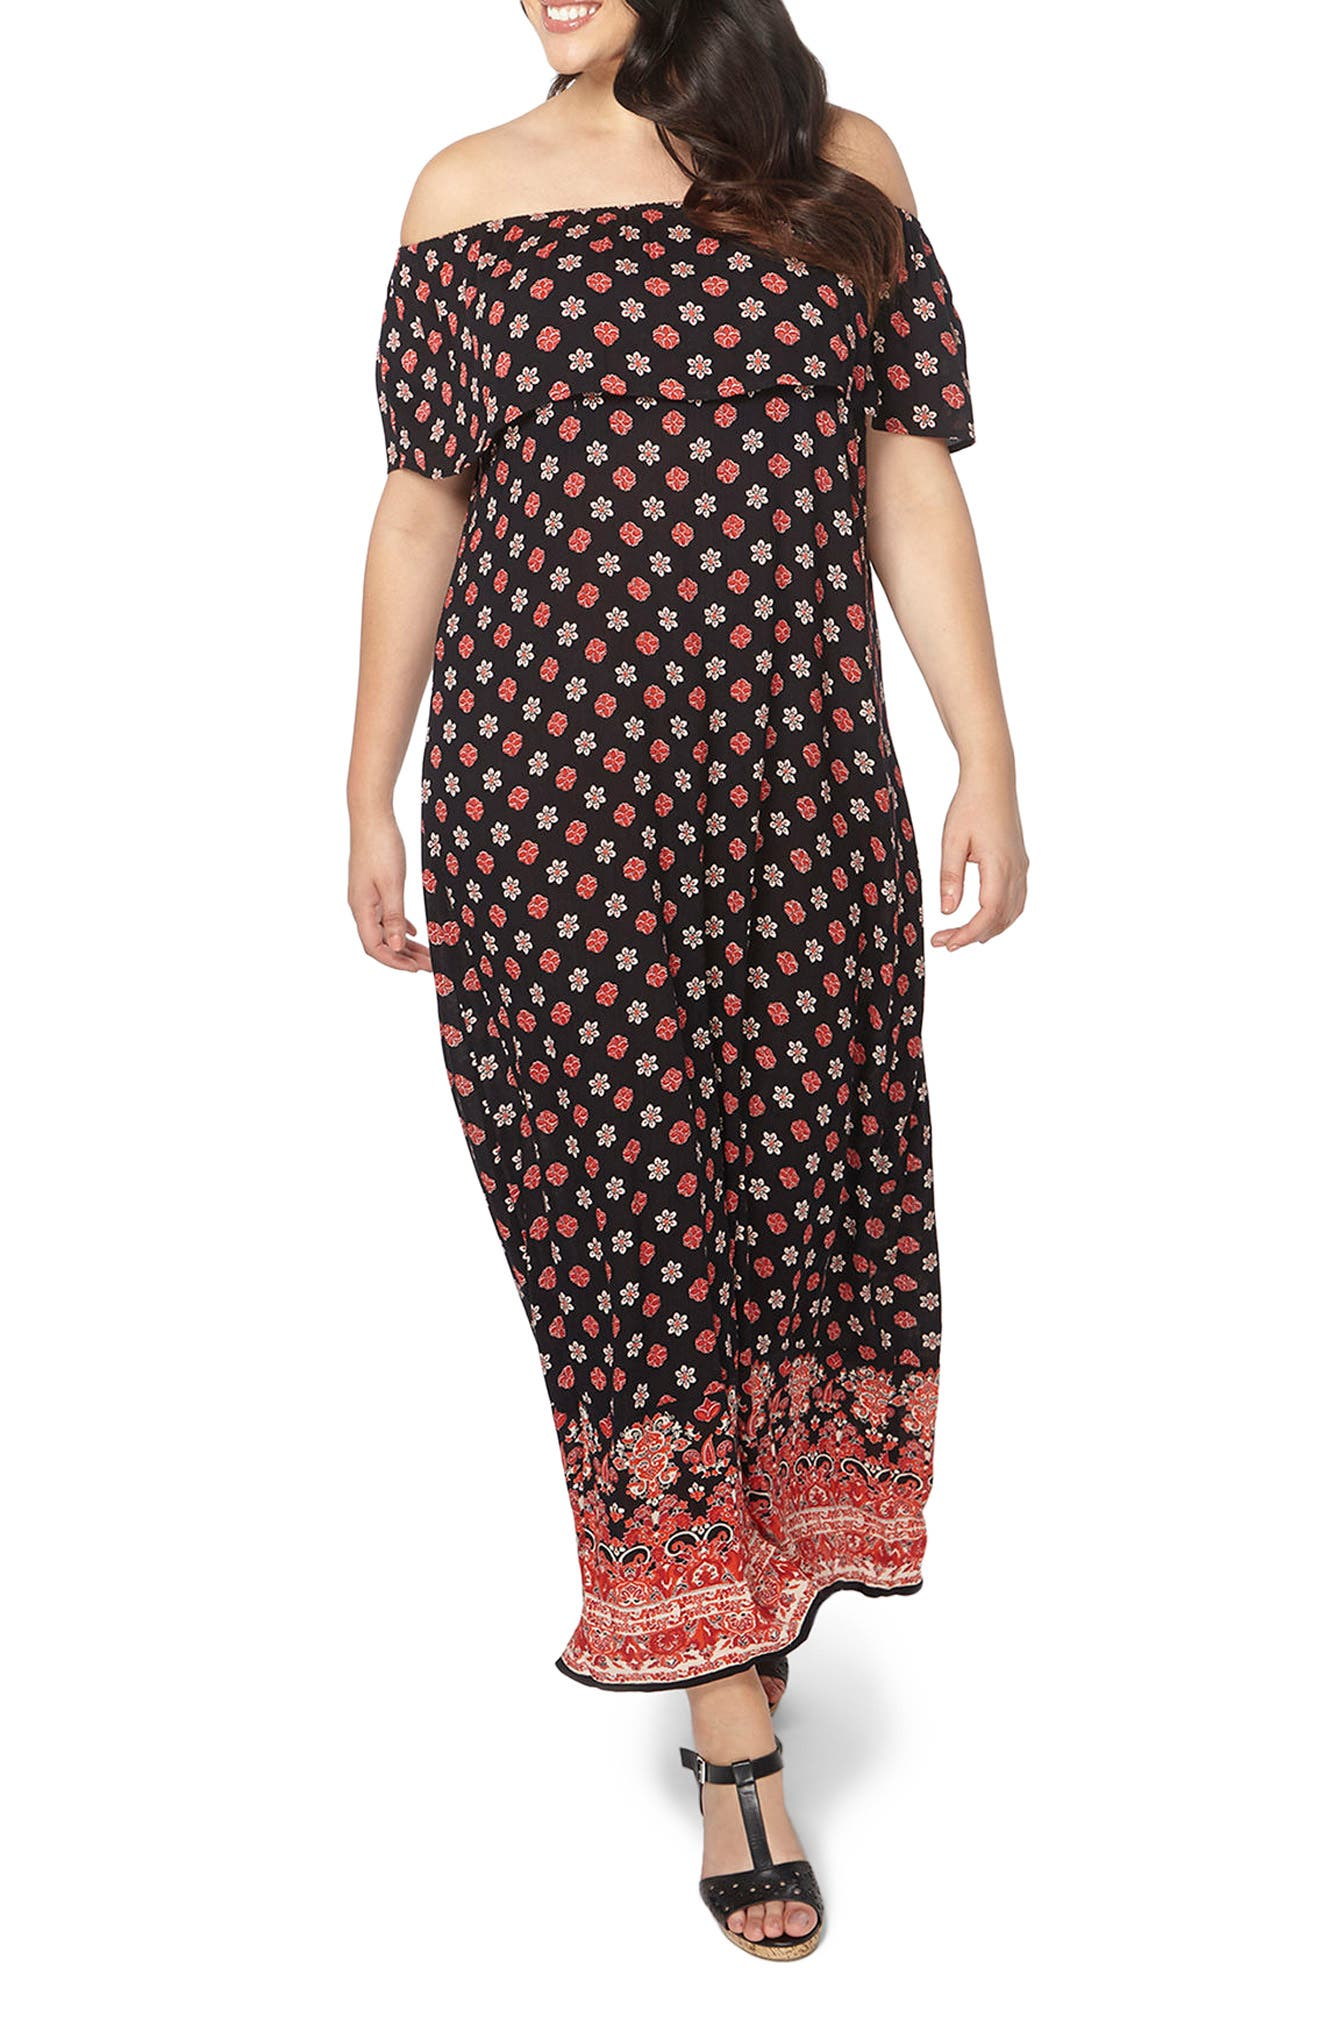 Border Print Maxi Dress,                             Main thumbnail 1, color,                             010